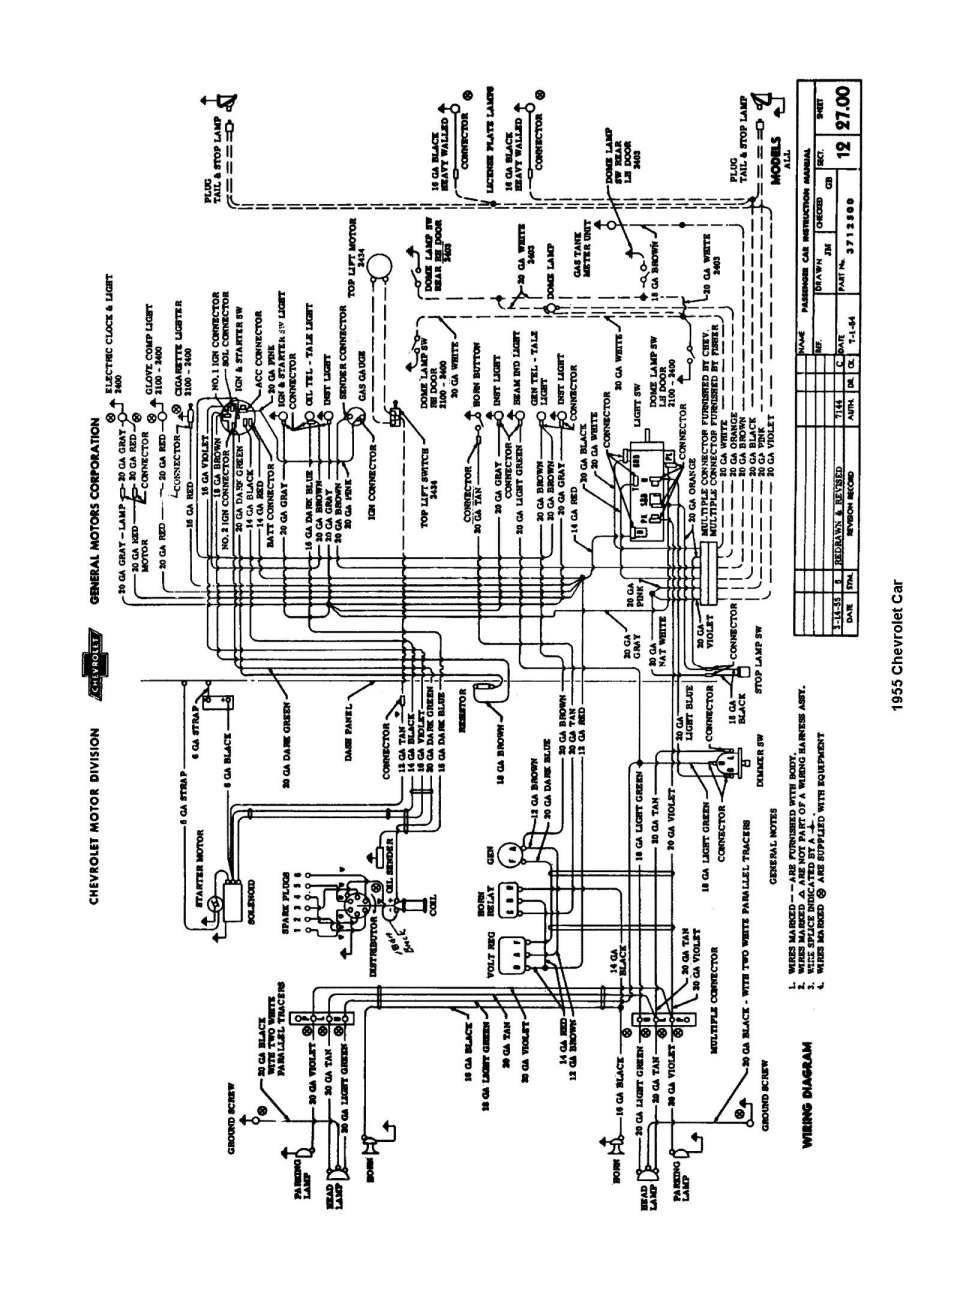 15+ I Need A Free 1947 Dodge Truck Wiring Diagram - Truck Diagram -  Wiringg.net | Dodge truck, Diagram, International truckPinterest